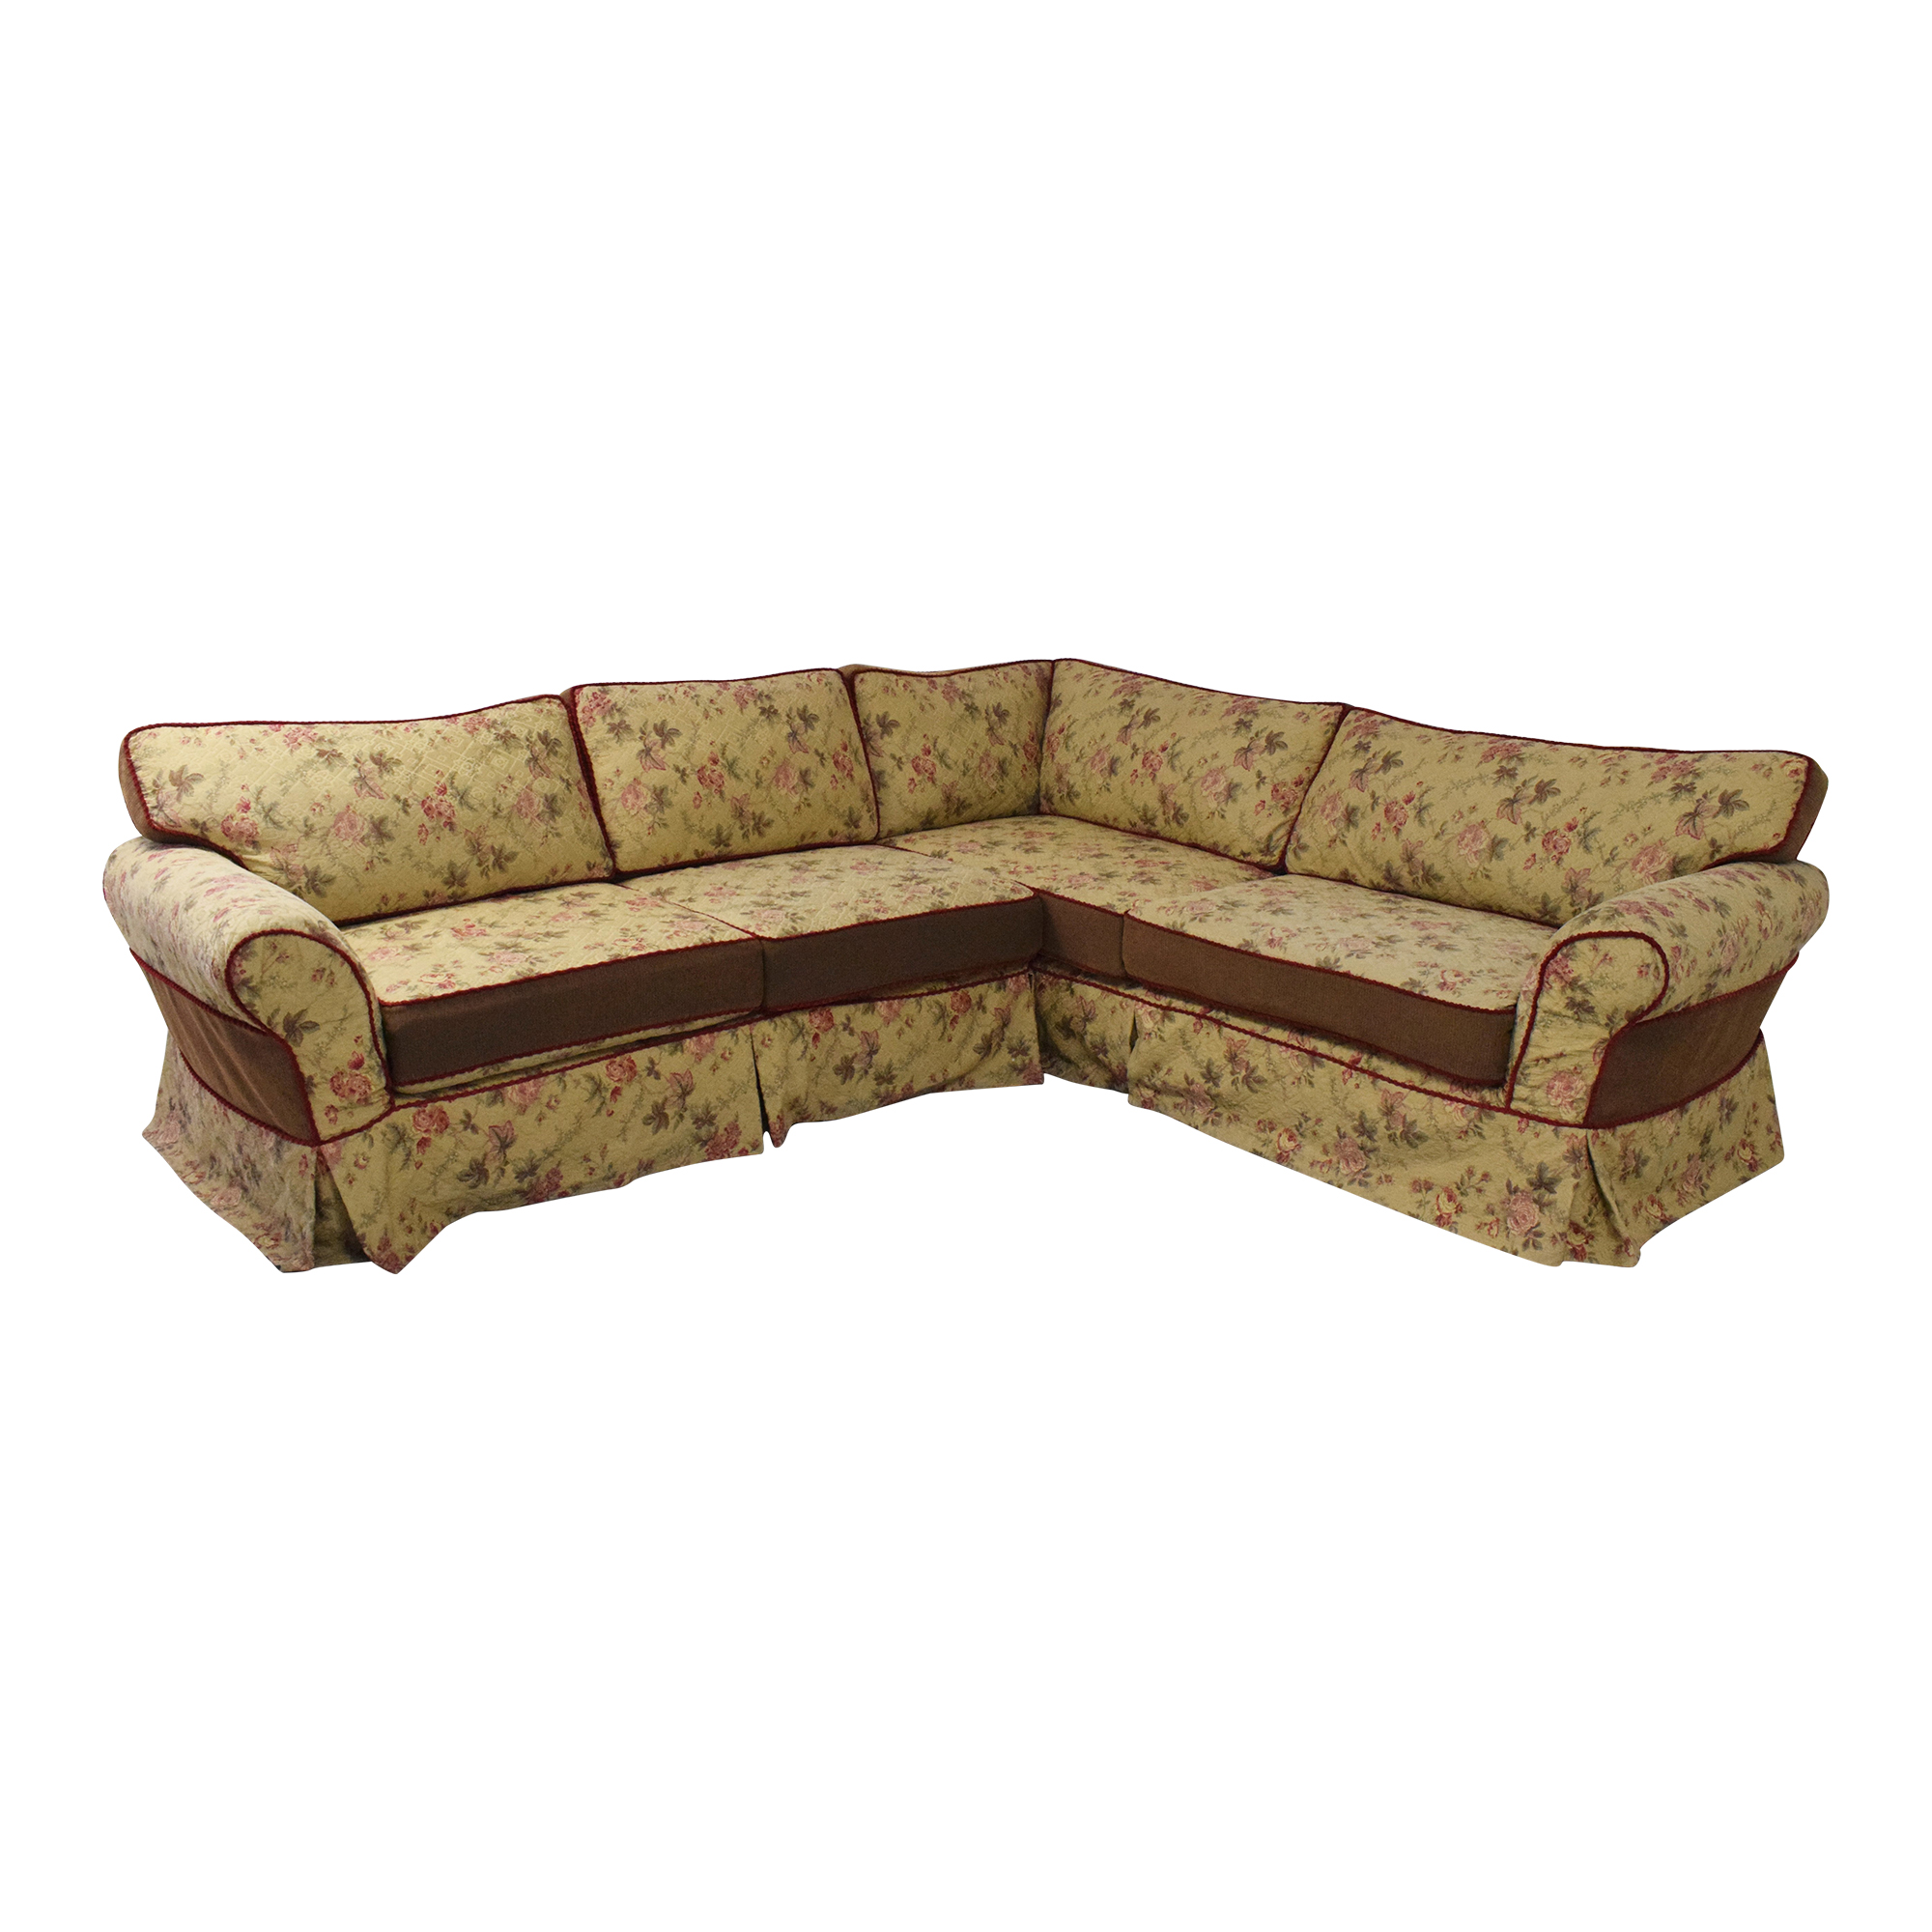 Platypus Platypus Roll Arm Slipcovered Sectional Sofa used